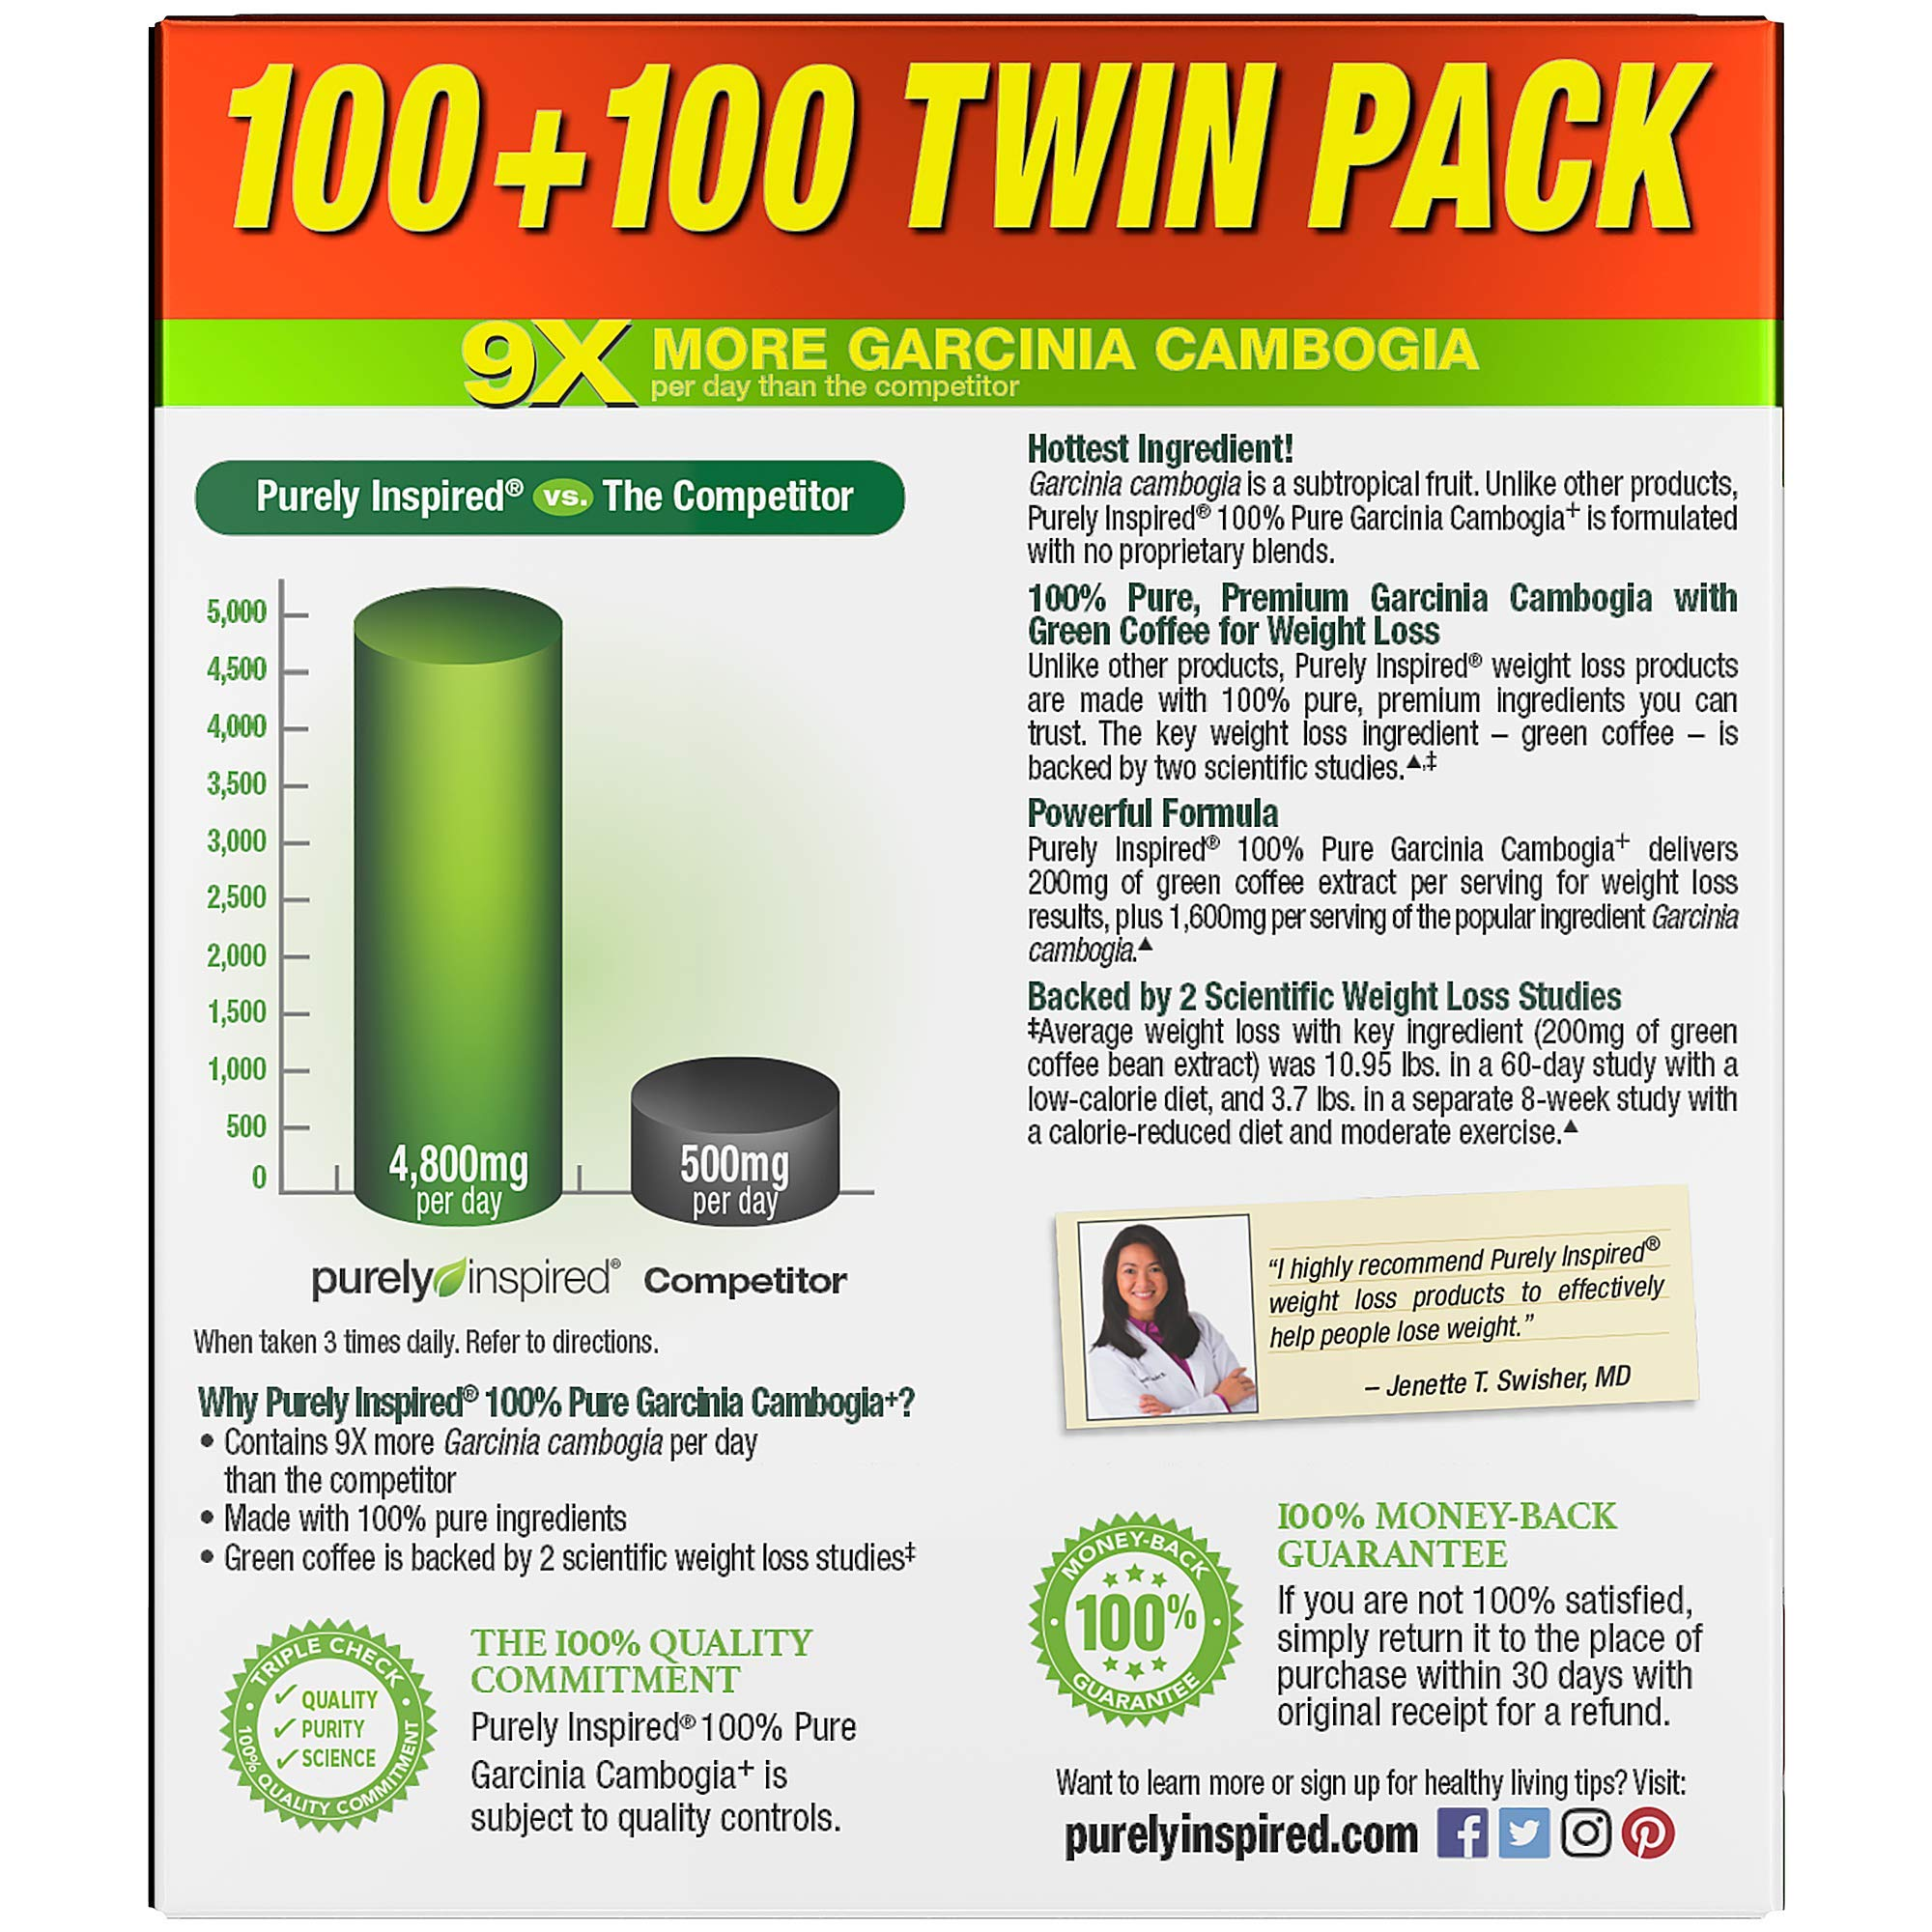 Purely Inspired Garcinia Cambogia Extract Weight Loss Supplement with Green Coffee, 1600mg Caplets, 100 Count, Pack of 2 by Purely Inspired